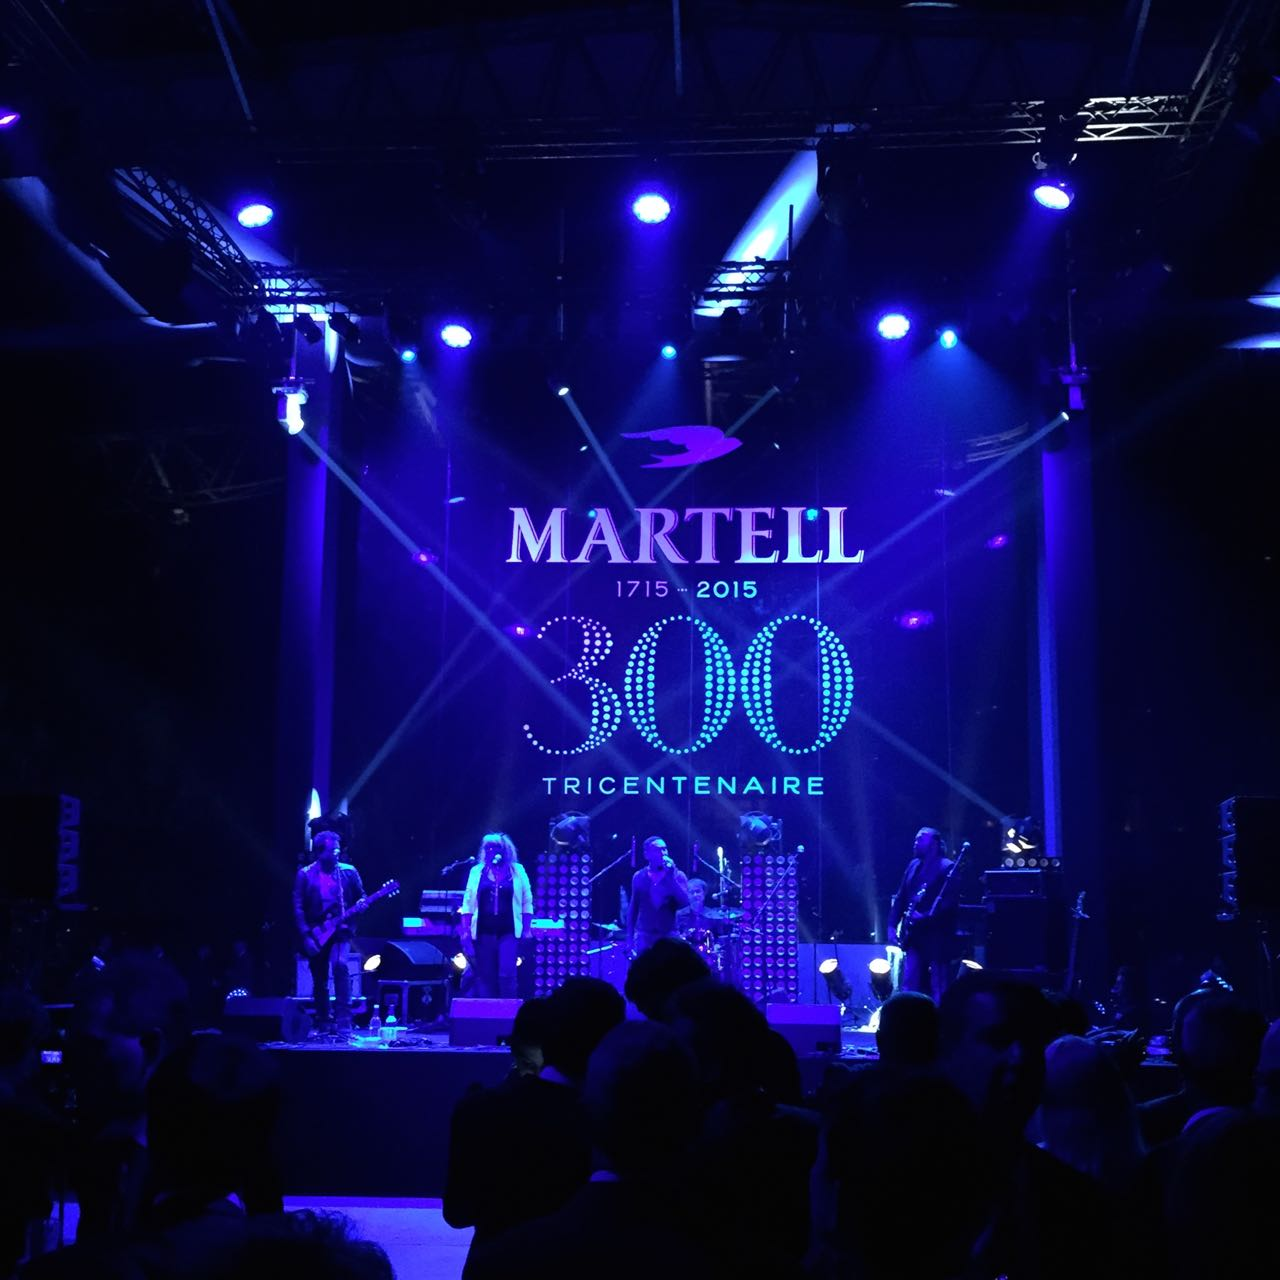 The House of Martell: 300 Years of Greatest Cognac Making